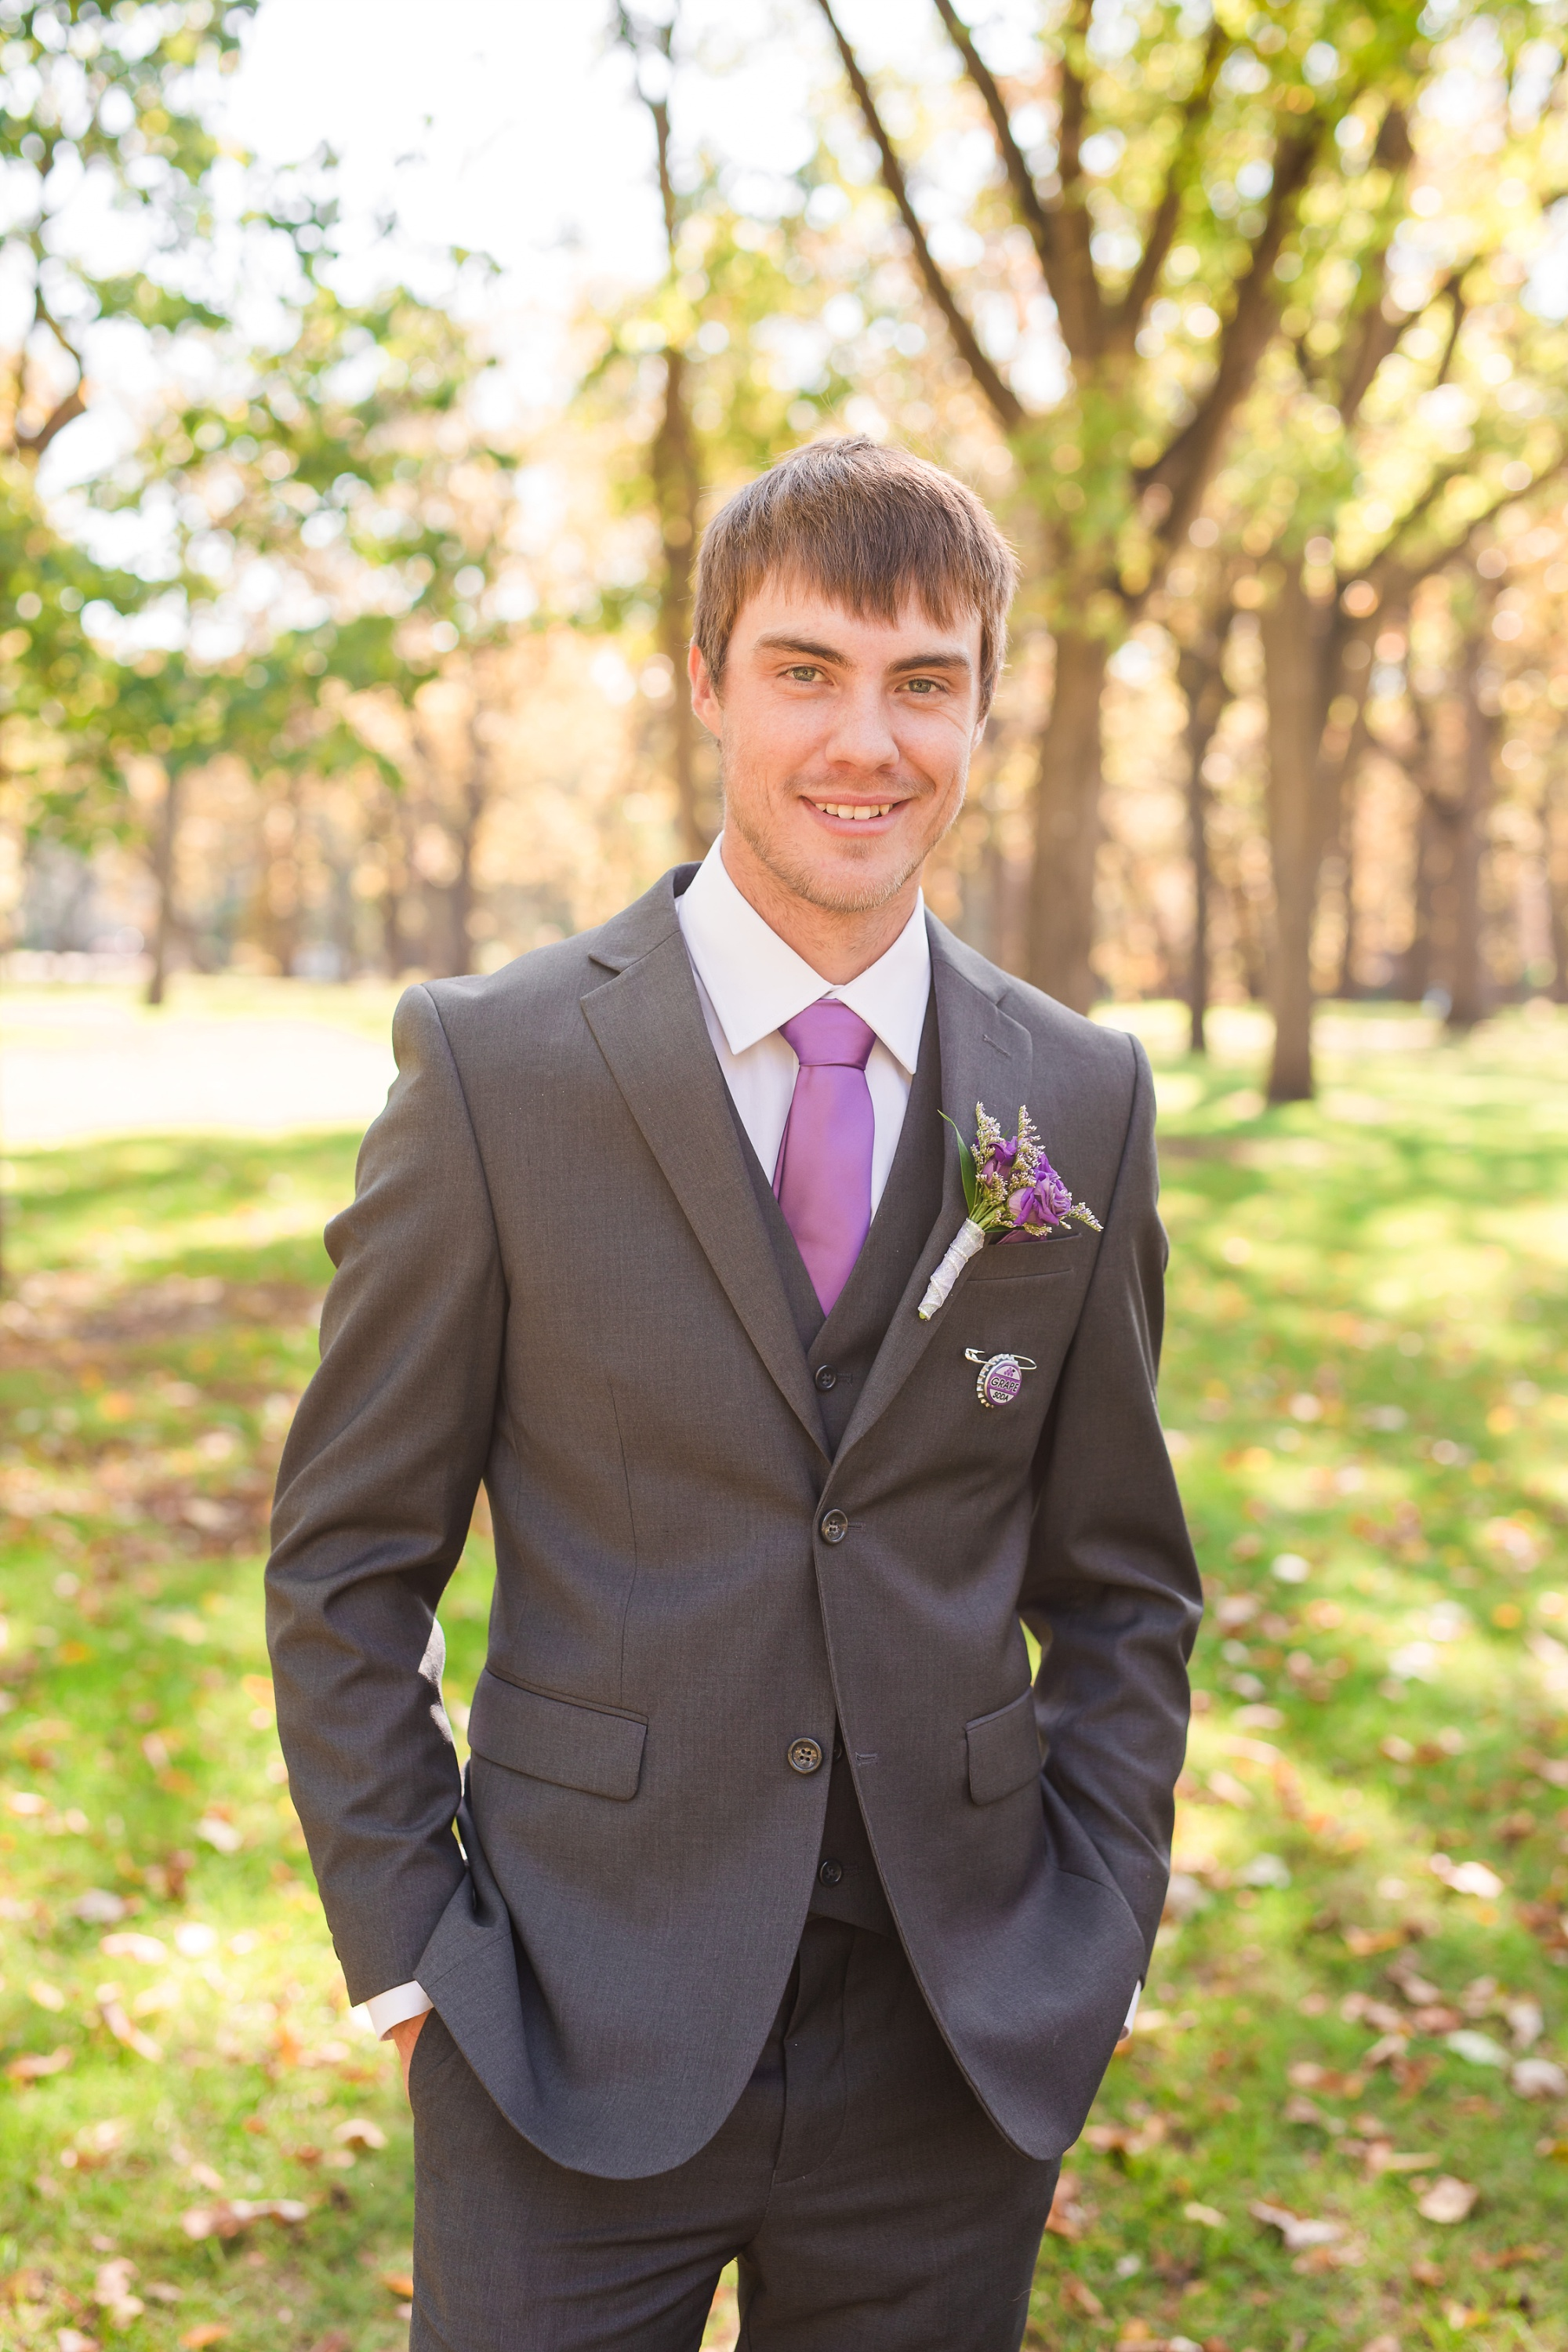 Downtown Fargo Disney Themed Wedding by Amber Langerud Photography | Groom Portrait Island Park